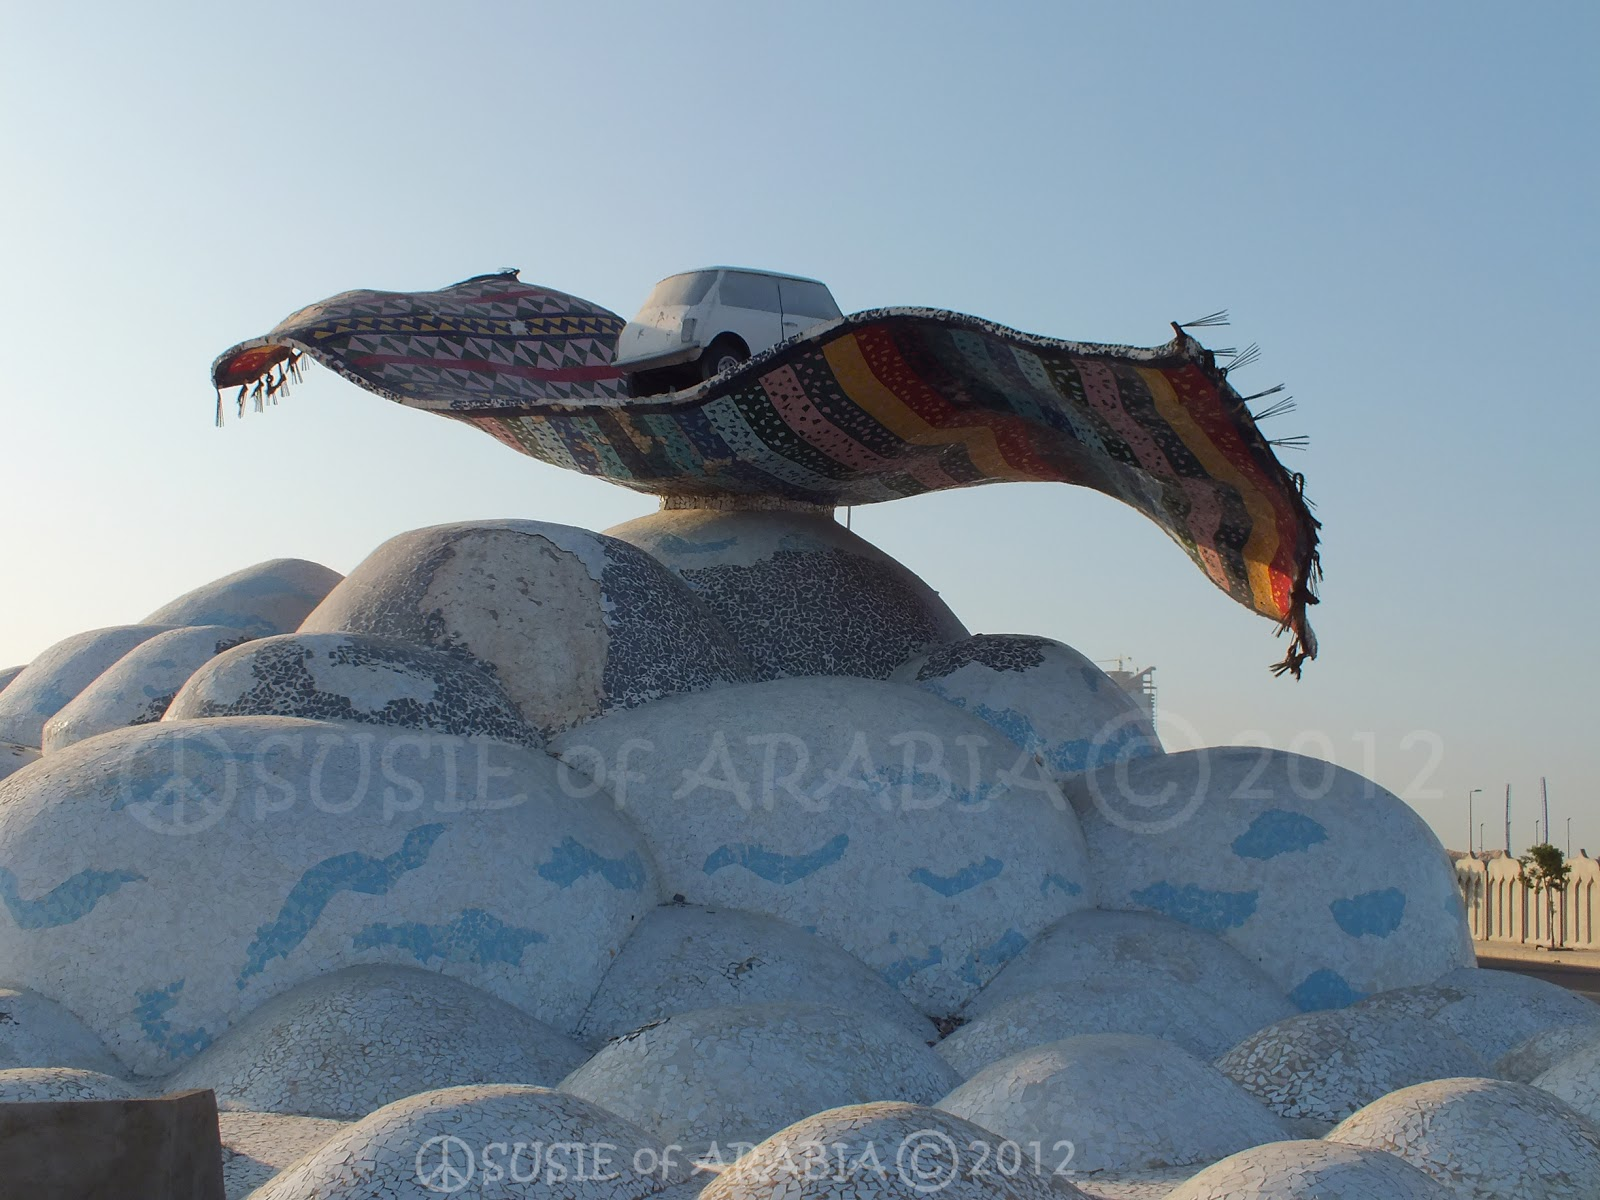 Jeddah Daily Photo: Our World: Magic Carpet Sculpture